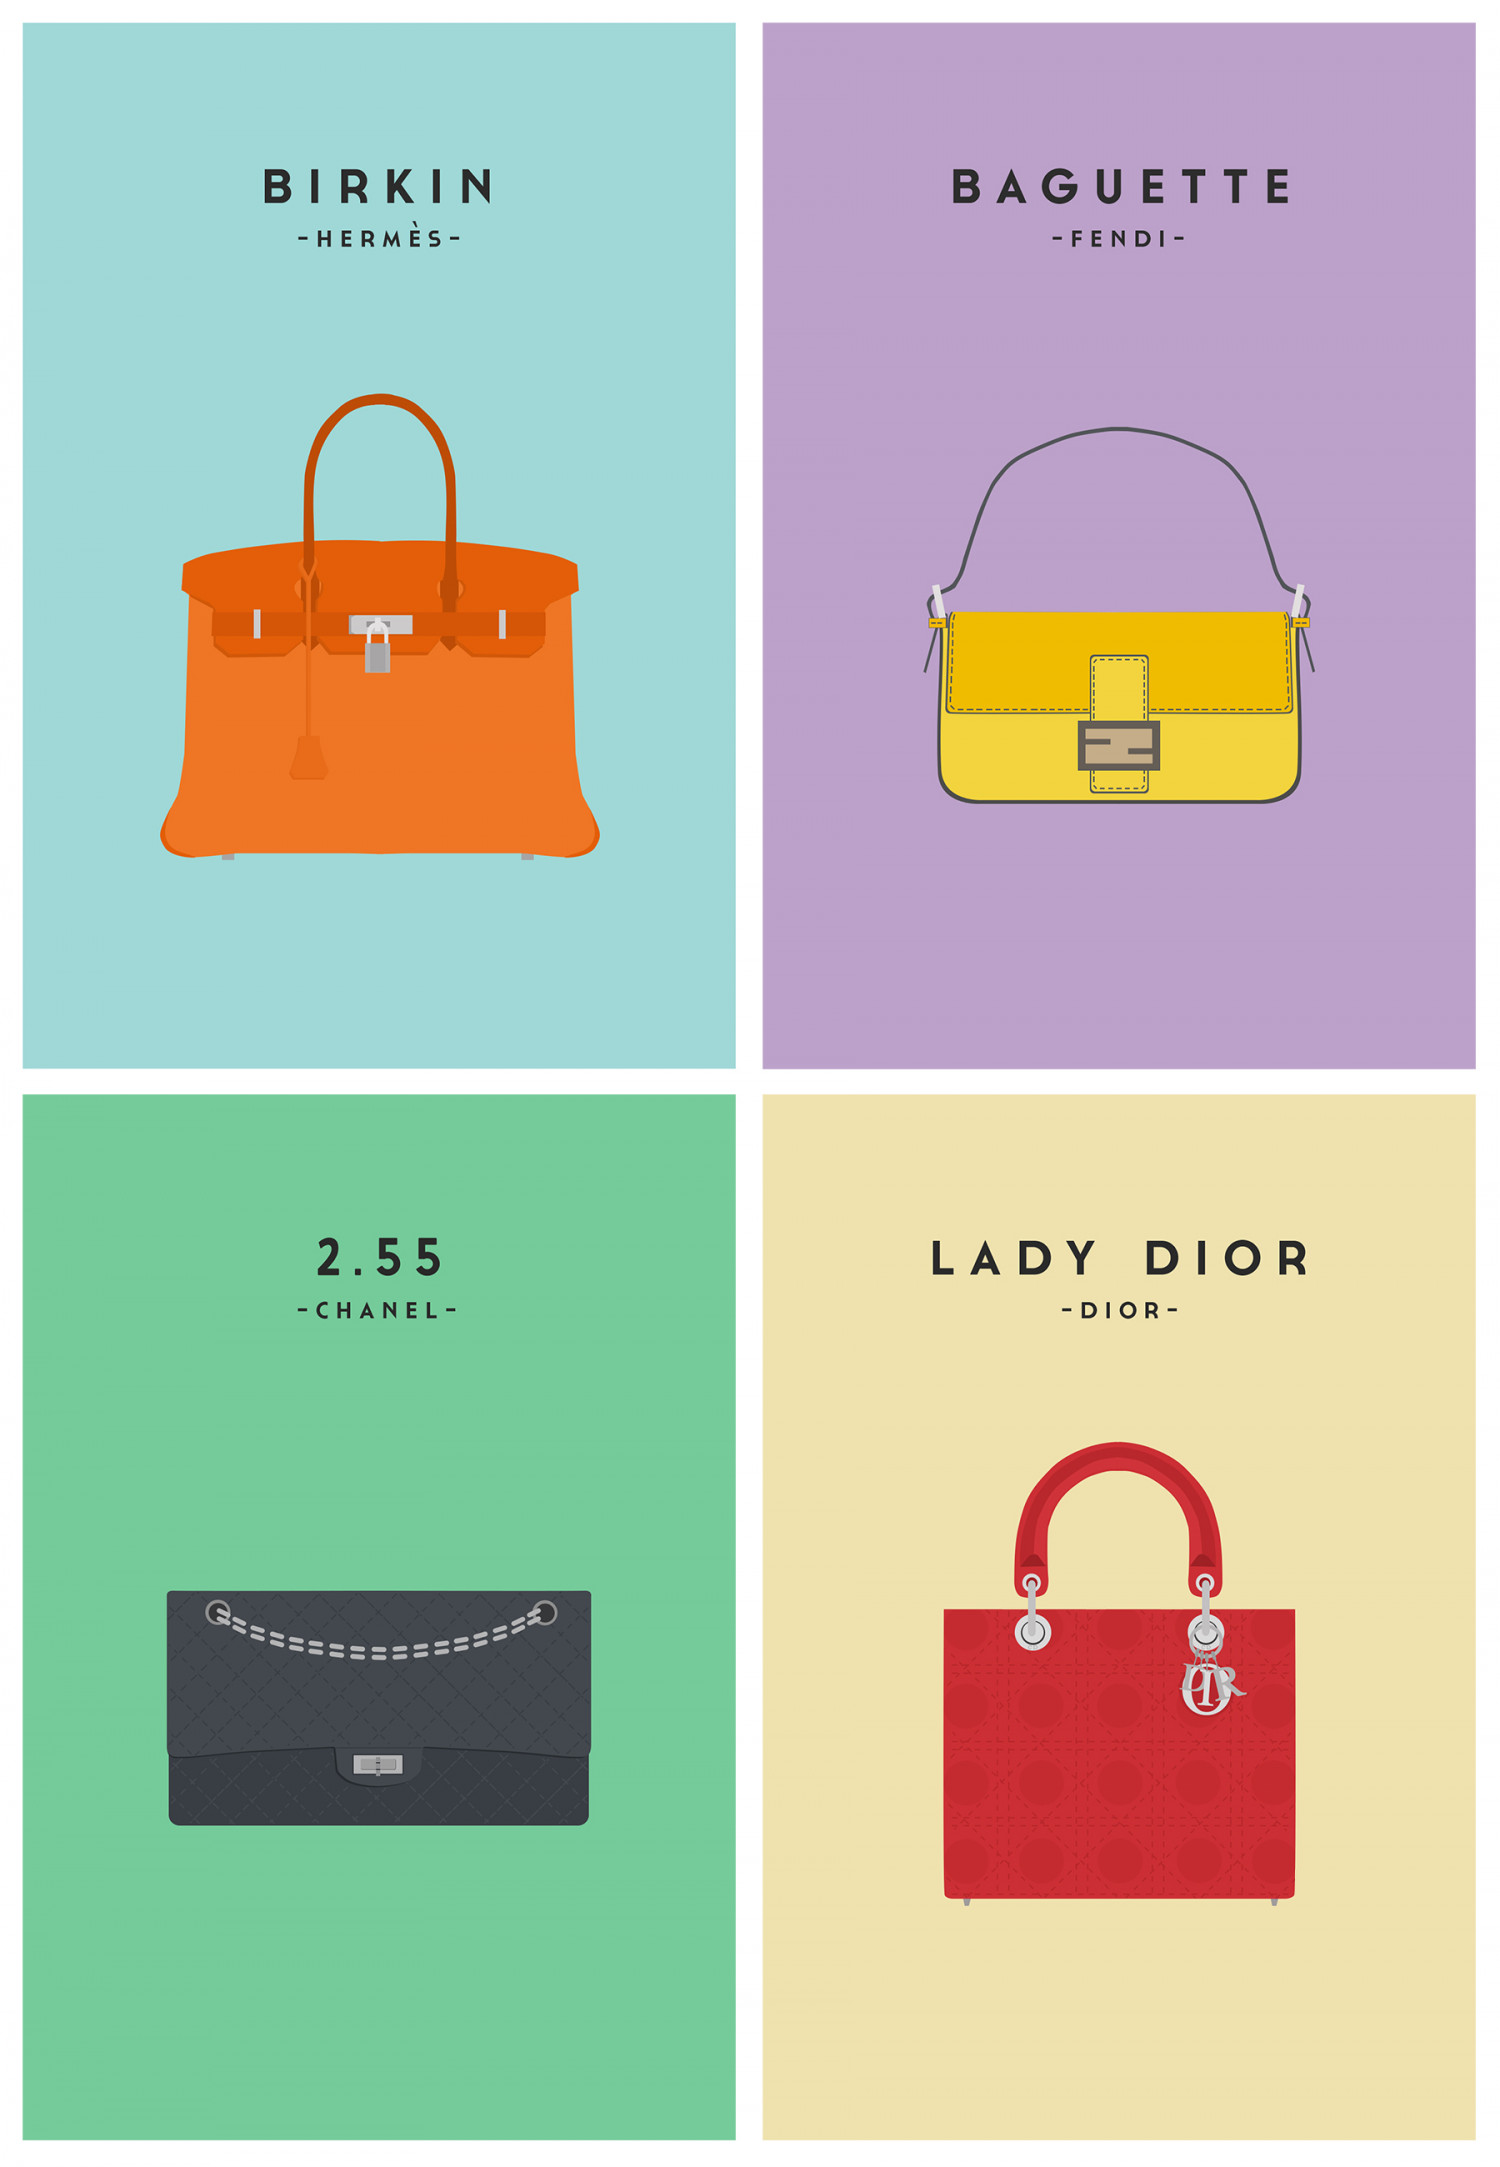 Iconic Handbags Infographic